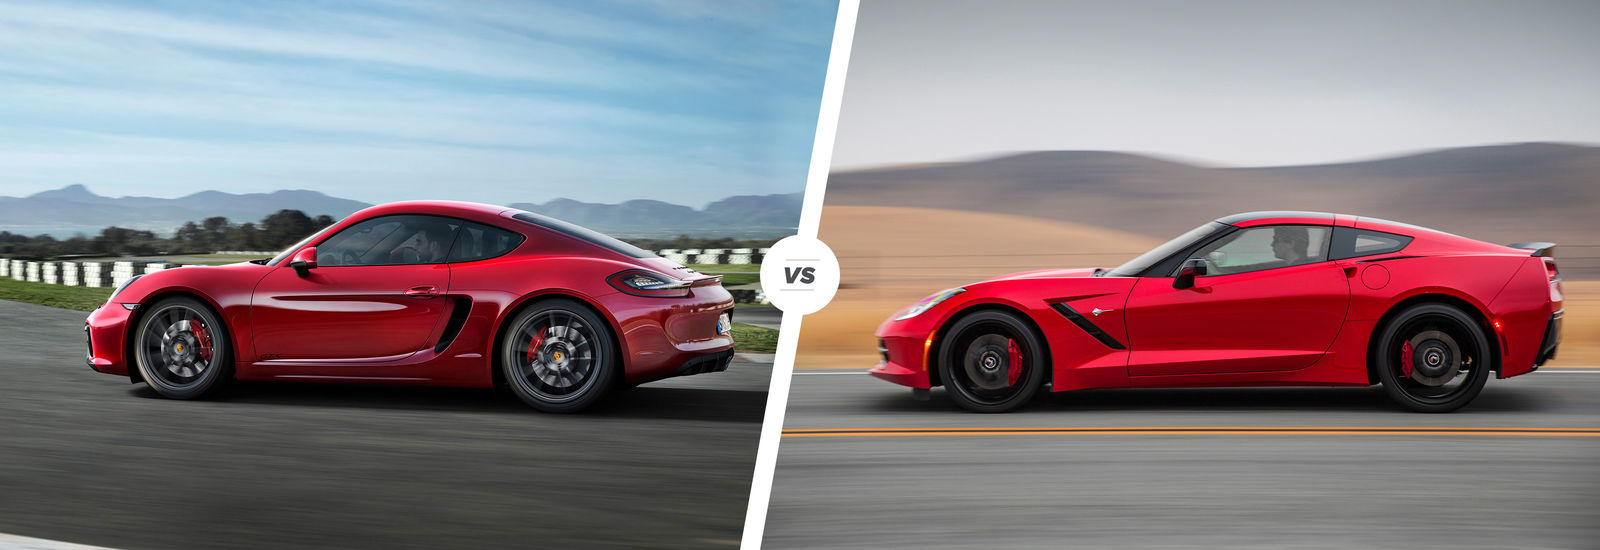 blog porsche cayman gts vs chevrolet corvette stingray